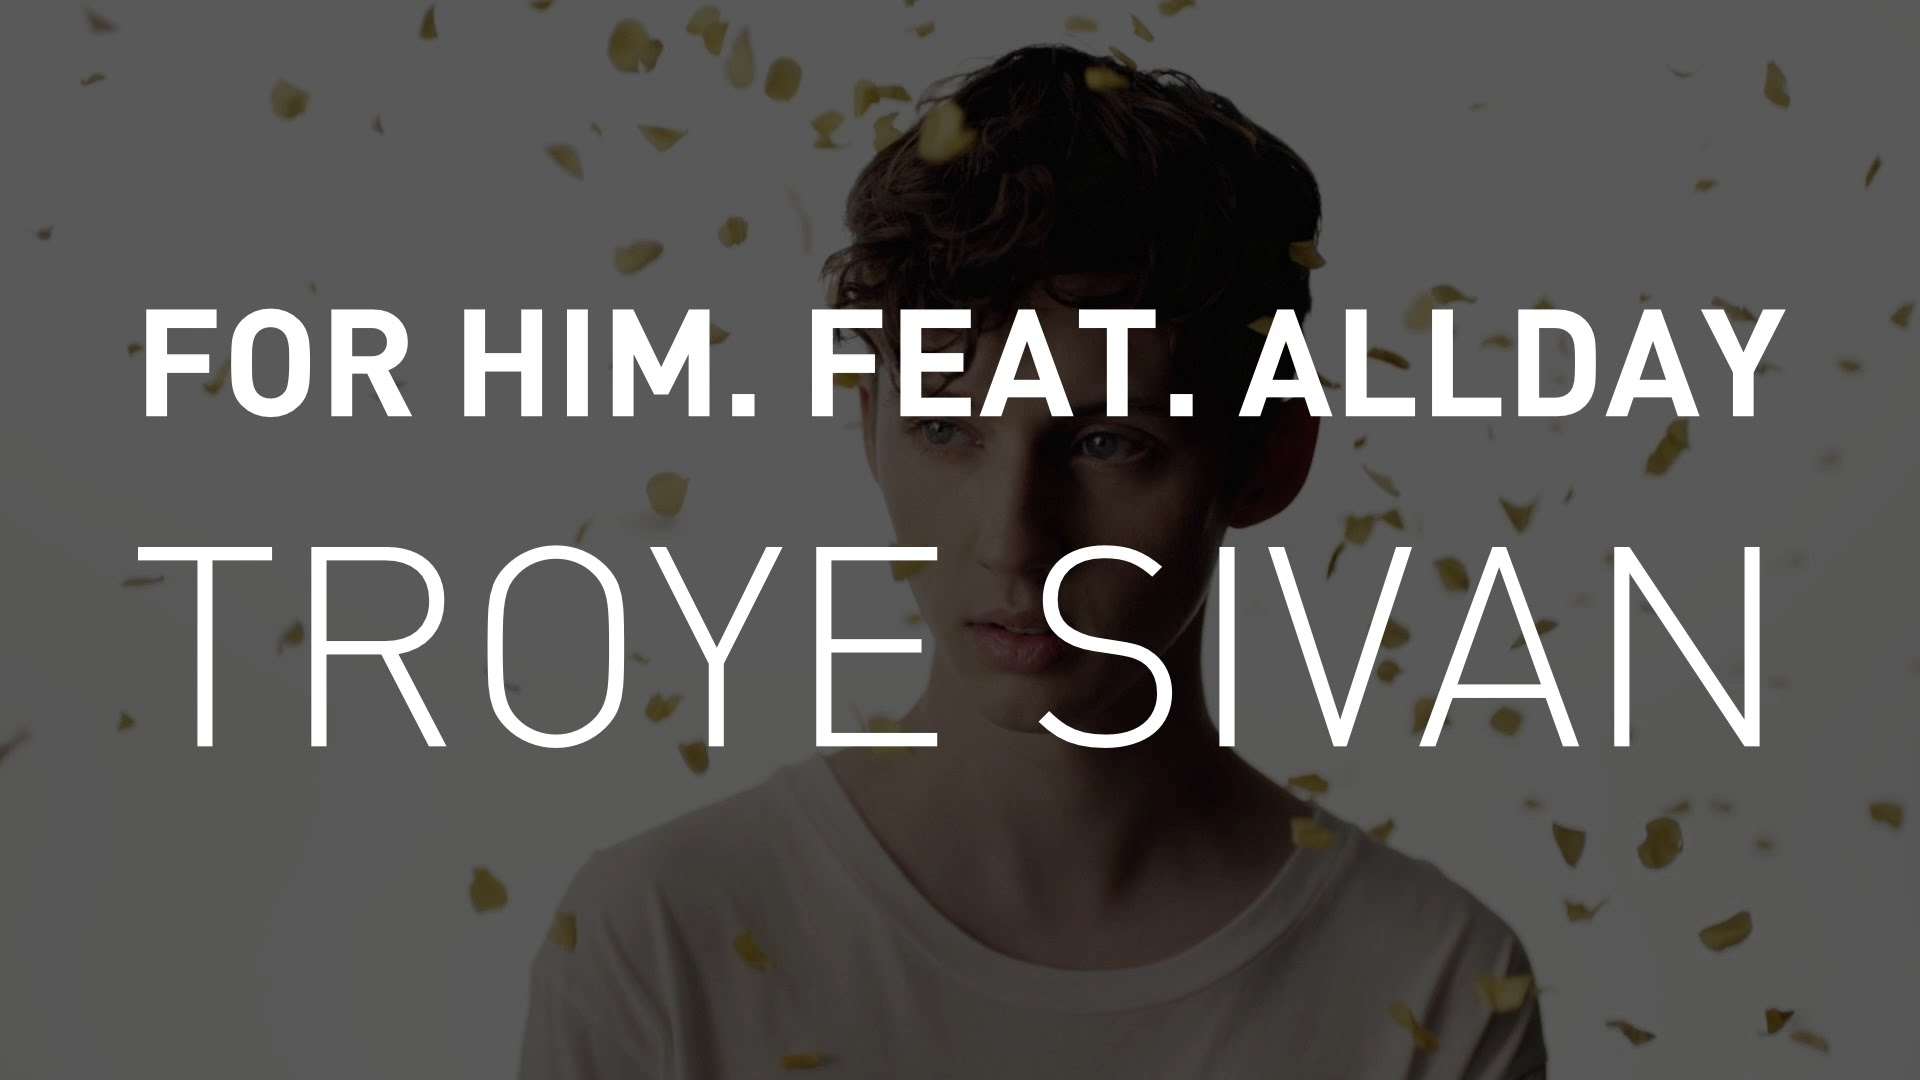 Troye Sivan For Him Feat Allday